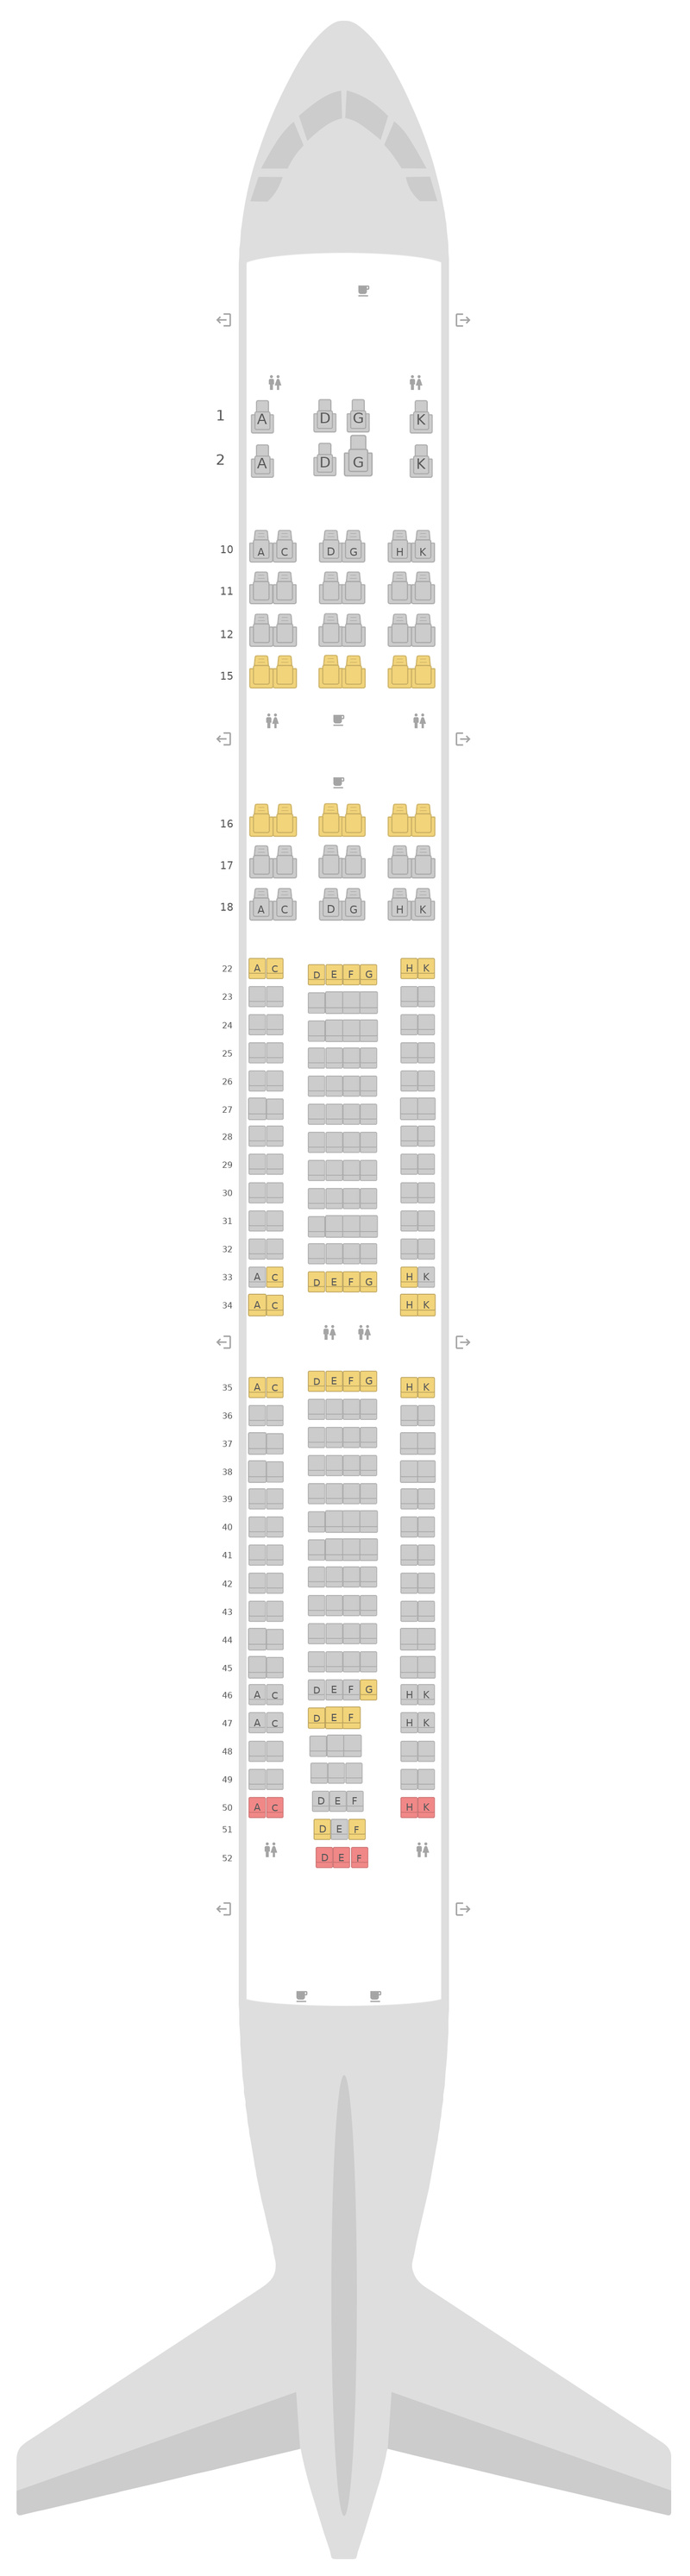 Seat Map Cathay Dragon (Dragonair) Airbus A330-300 (333) v3